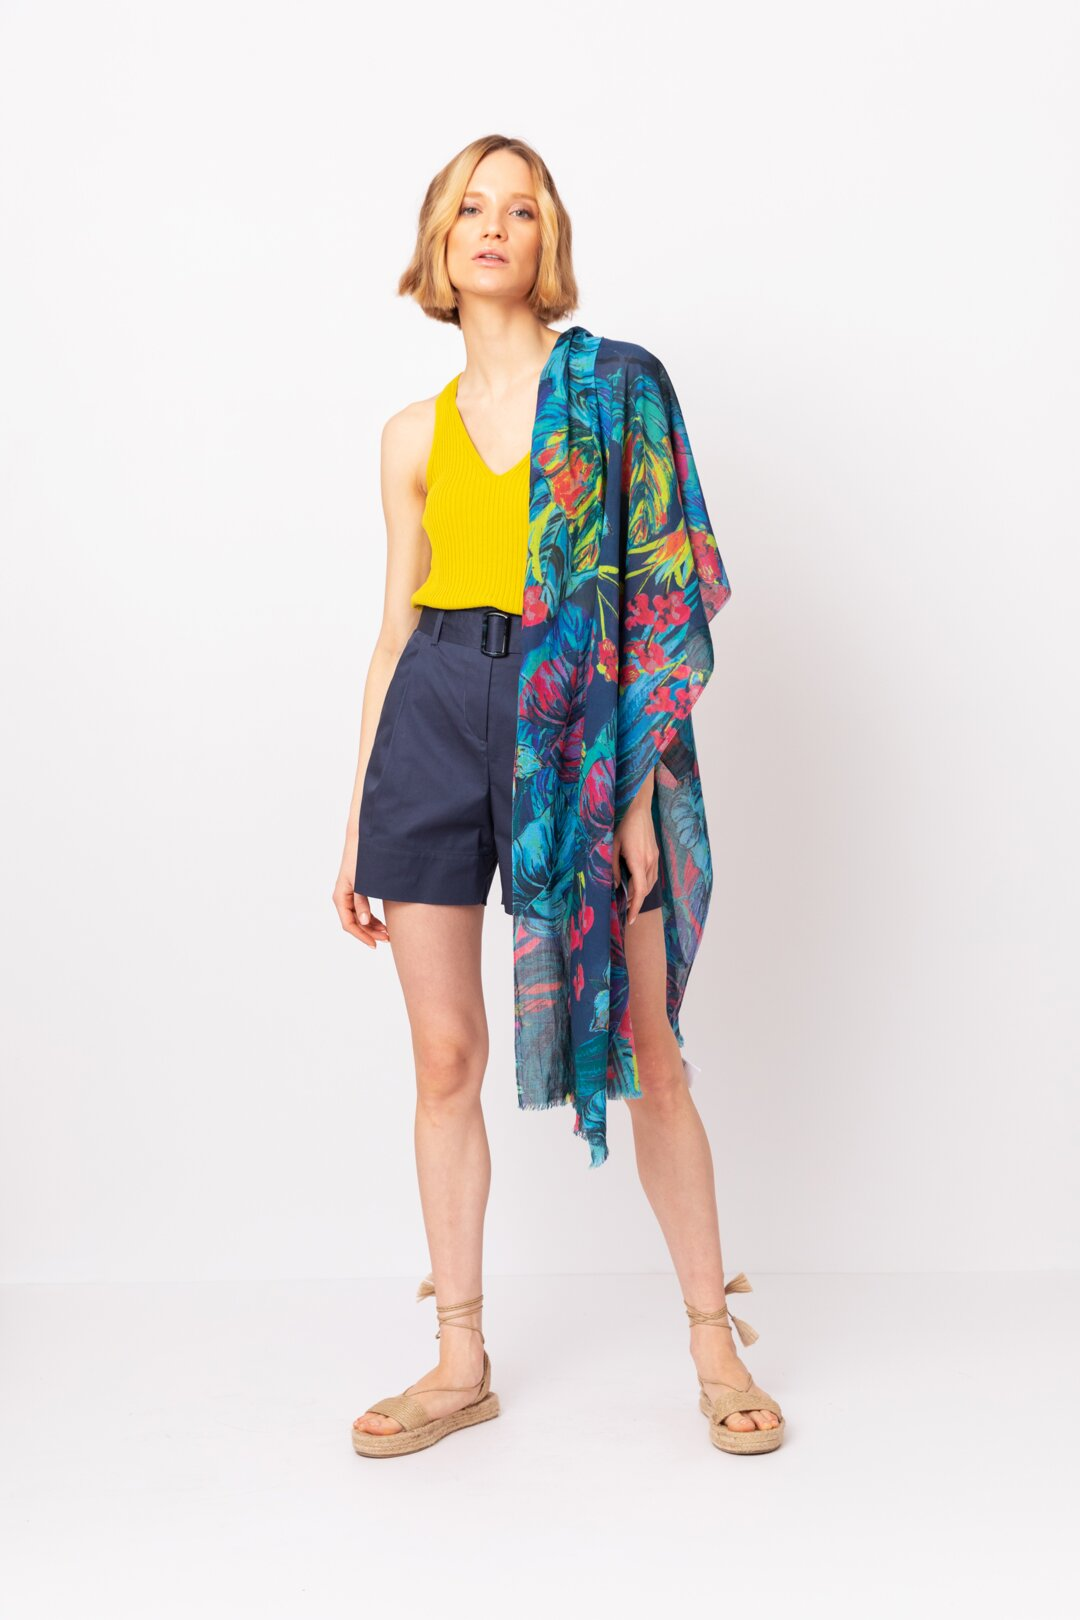 outfit-7c8a8025